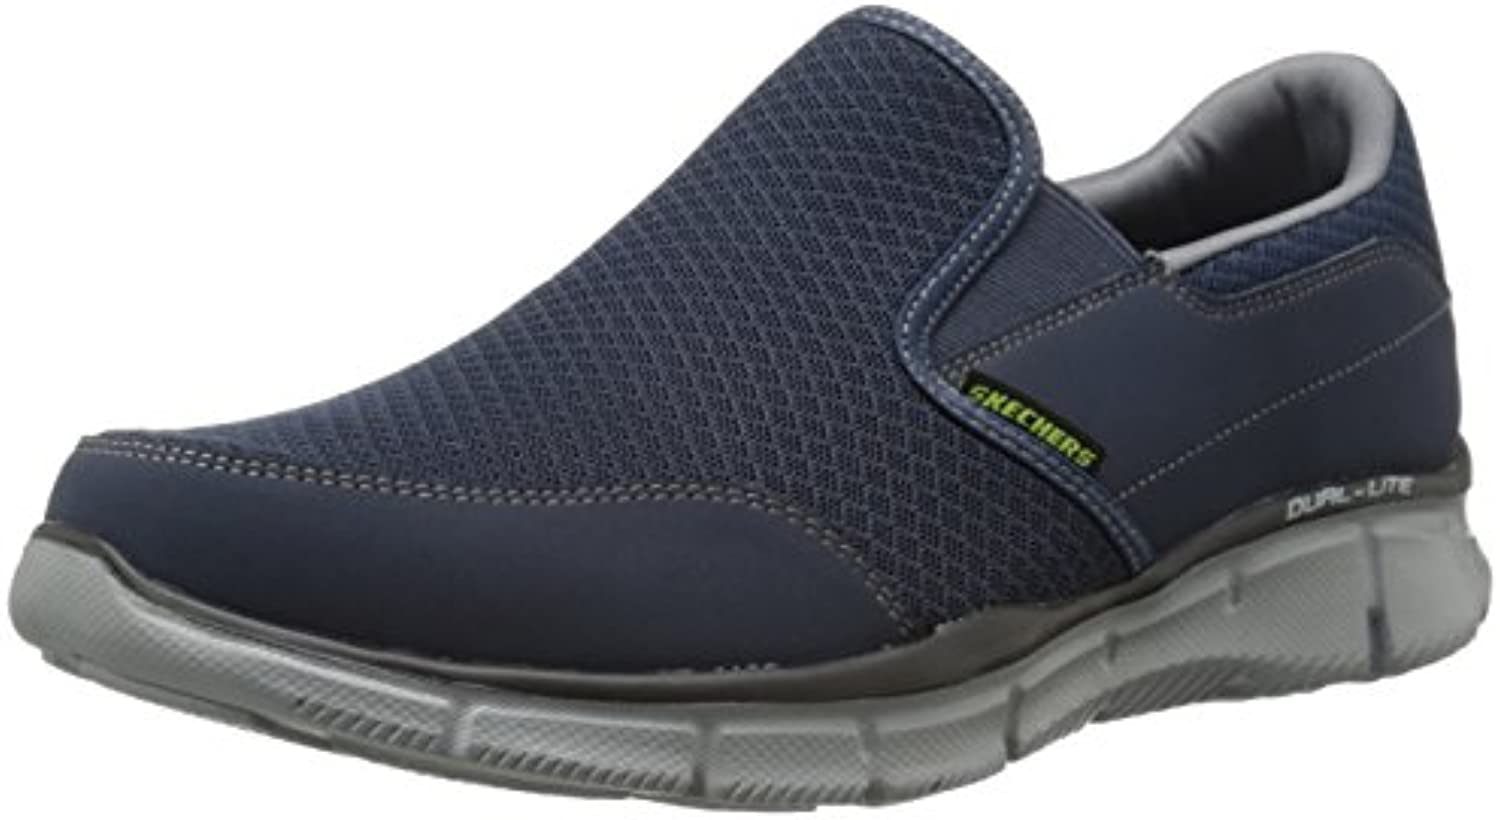 Skechers Equalizer - Persistent - Zapatillas Hombre -